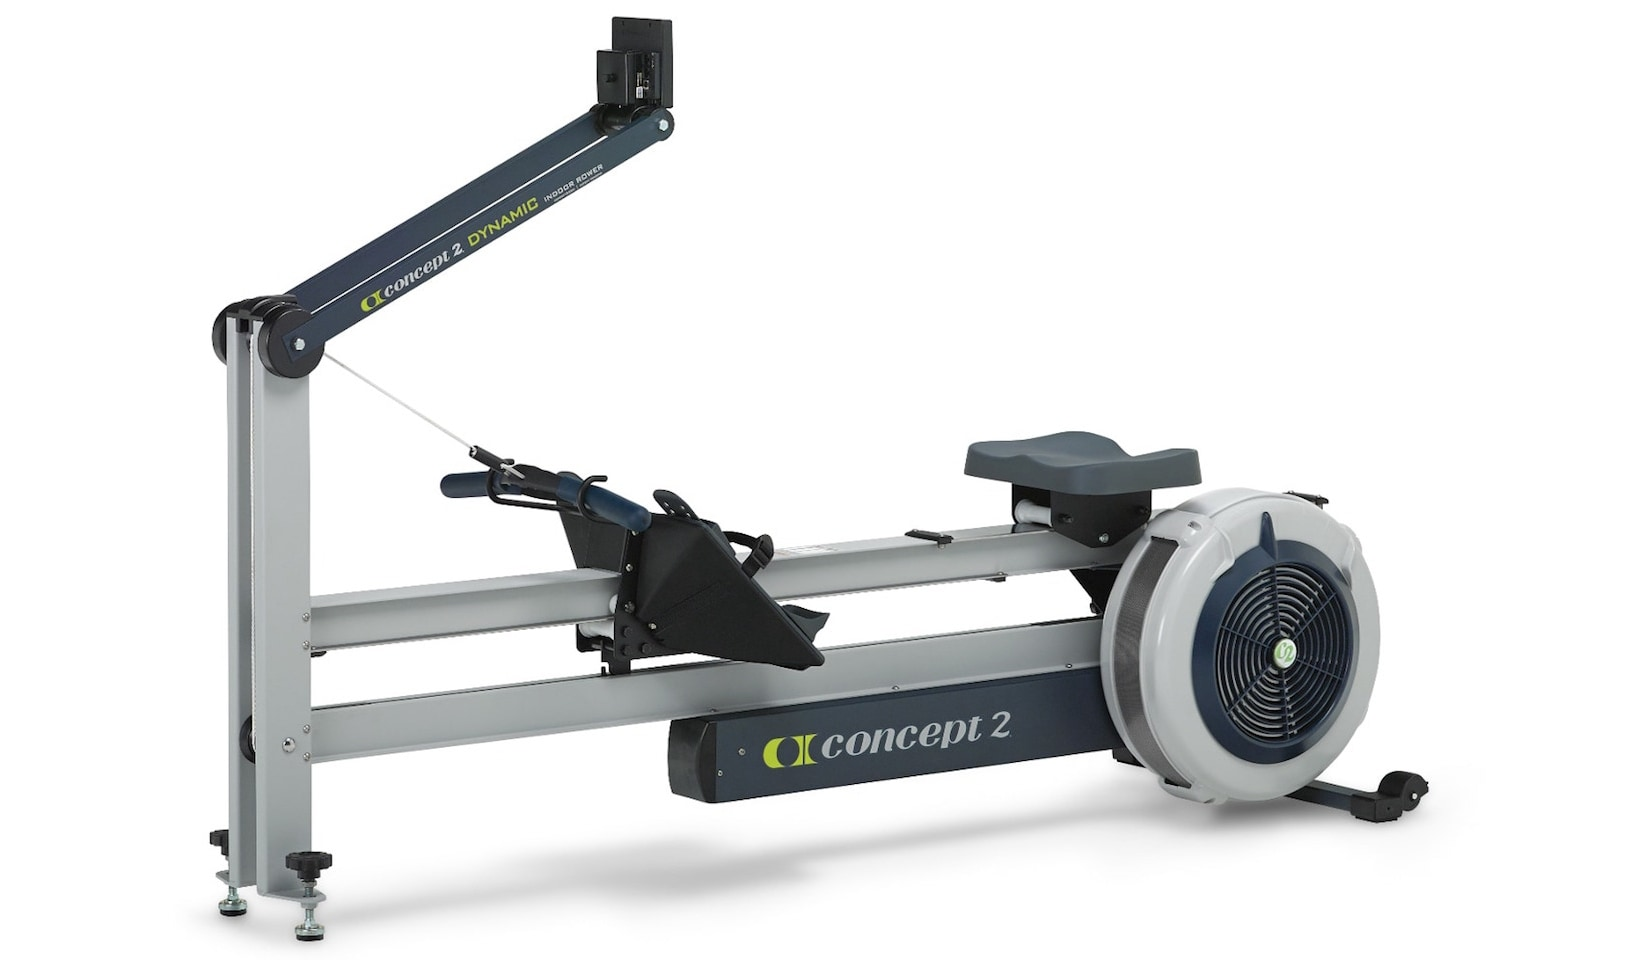 concept 2 rowing machine accessories